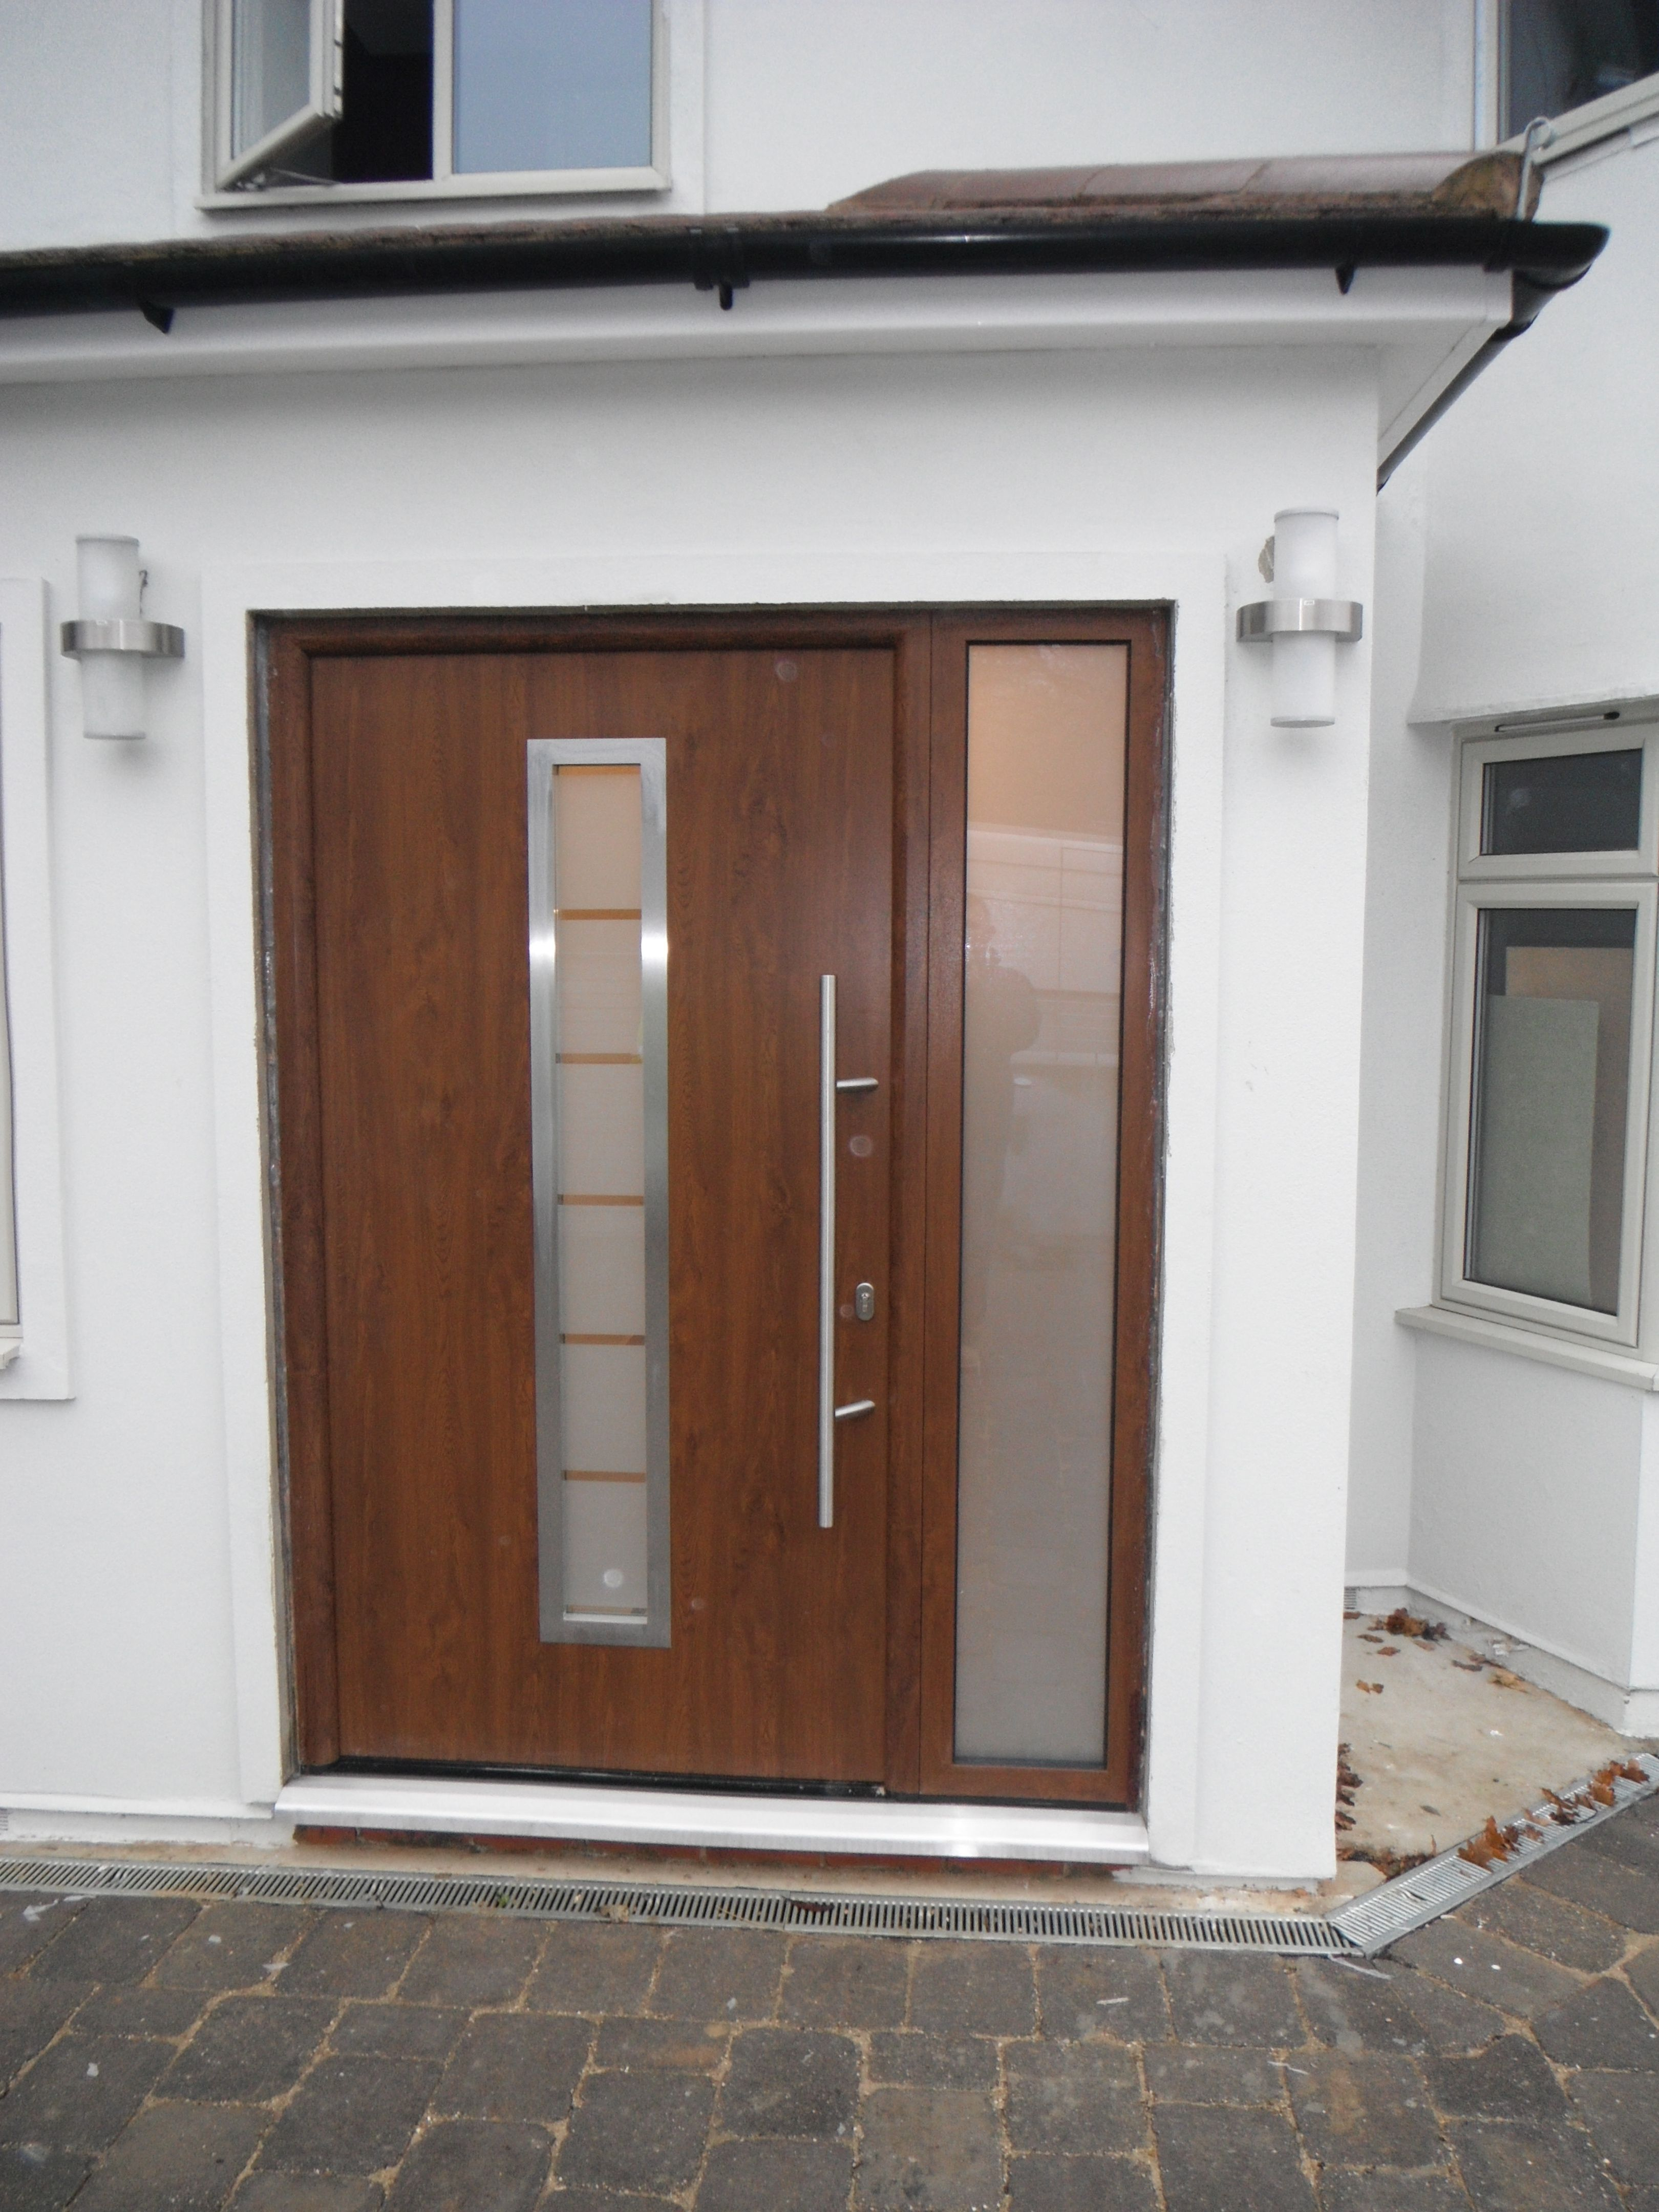 Doors and sidelights matching window on front and black onduline roof - Hormann Steel Thermopro Tps 700 In Dark Oak Decograin Finish Entrance Doorsfront